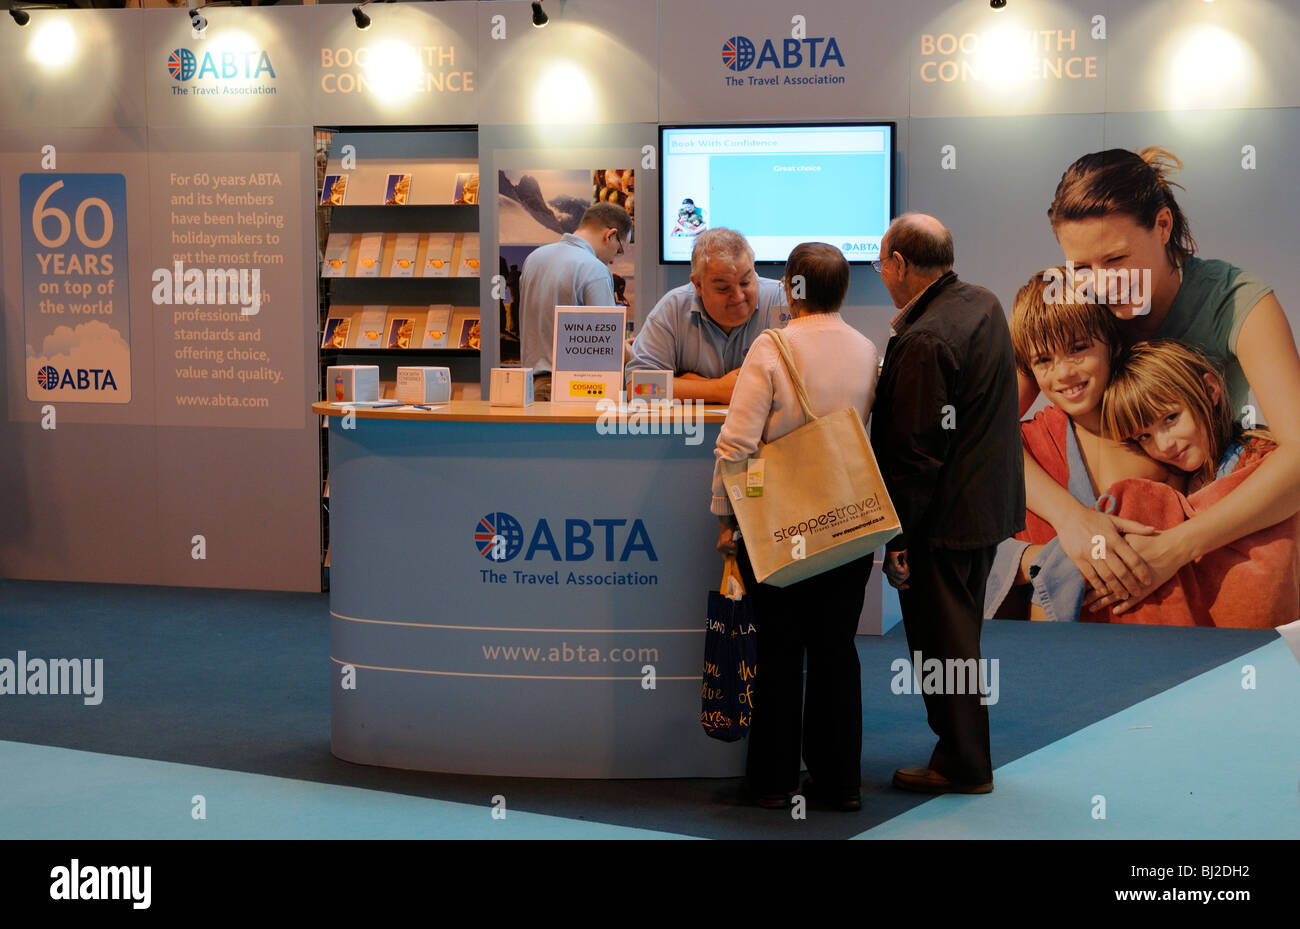 ABTA The Travel Association stand at Destinations exhibition NEC Birmingham England - Stock Image